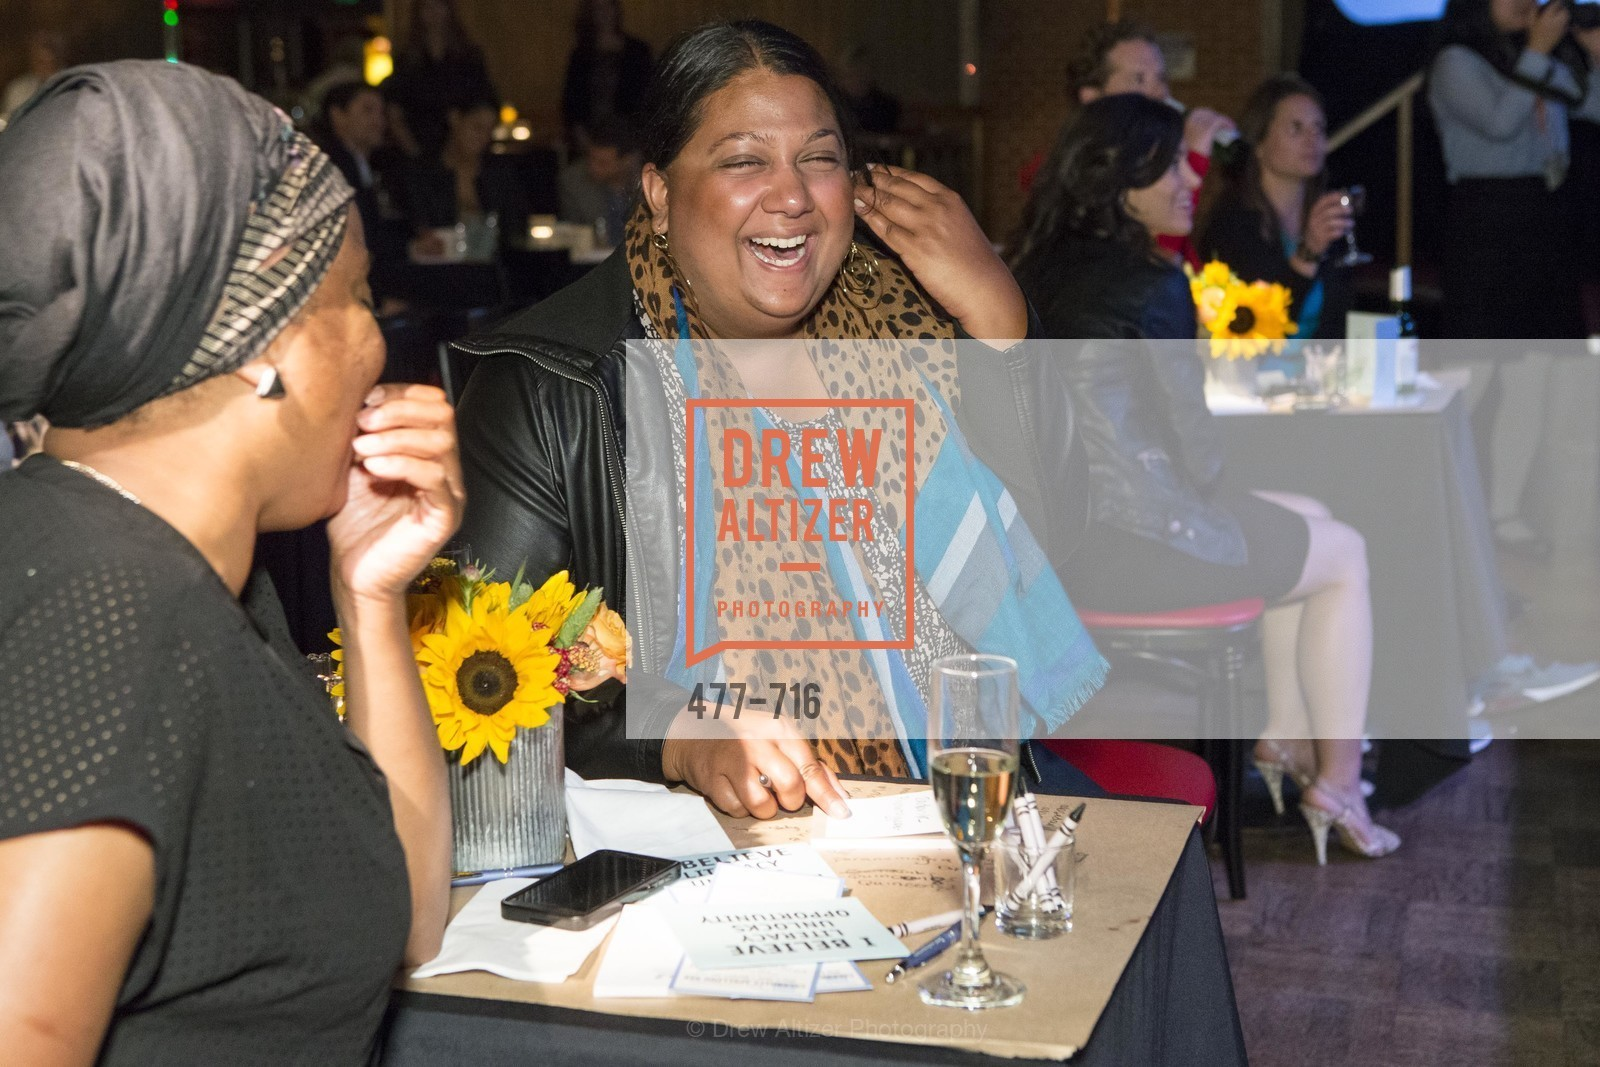 Leah Edun, READING PARTNERS BAY AREA Celebrity Spelling Bee, US, May 9th, 2015,Drew Altizer, Drew Altizer Photography, full-service agency, private events, San Francisco photographer, photographer california